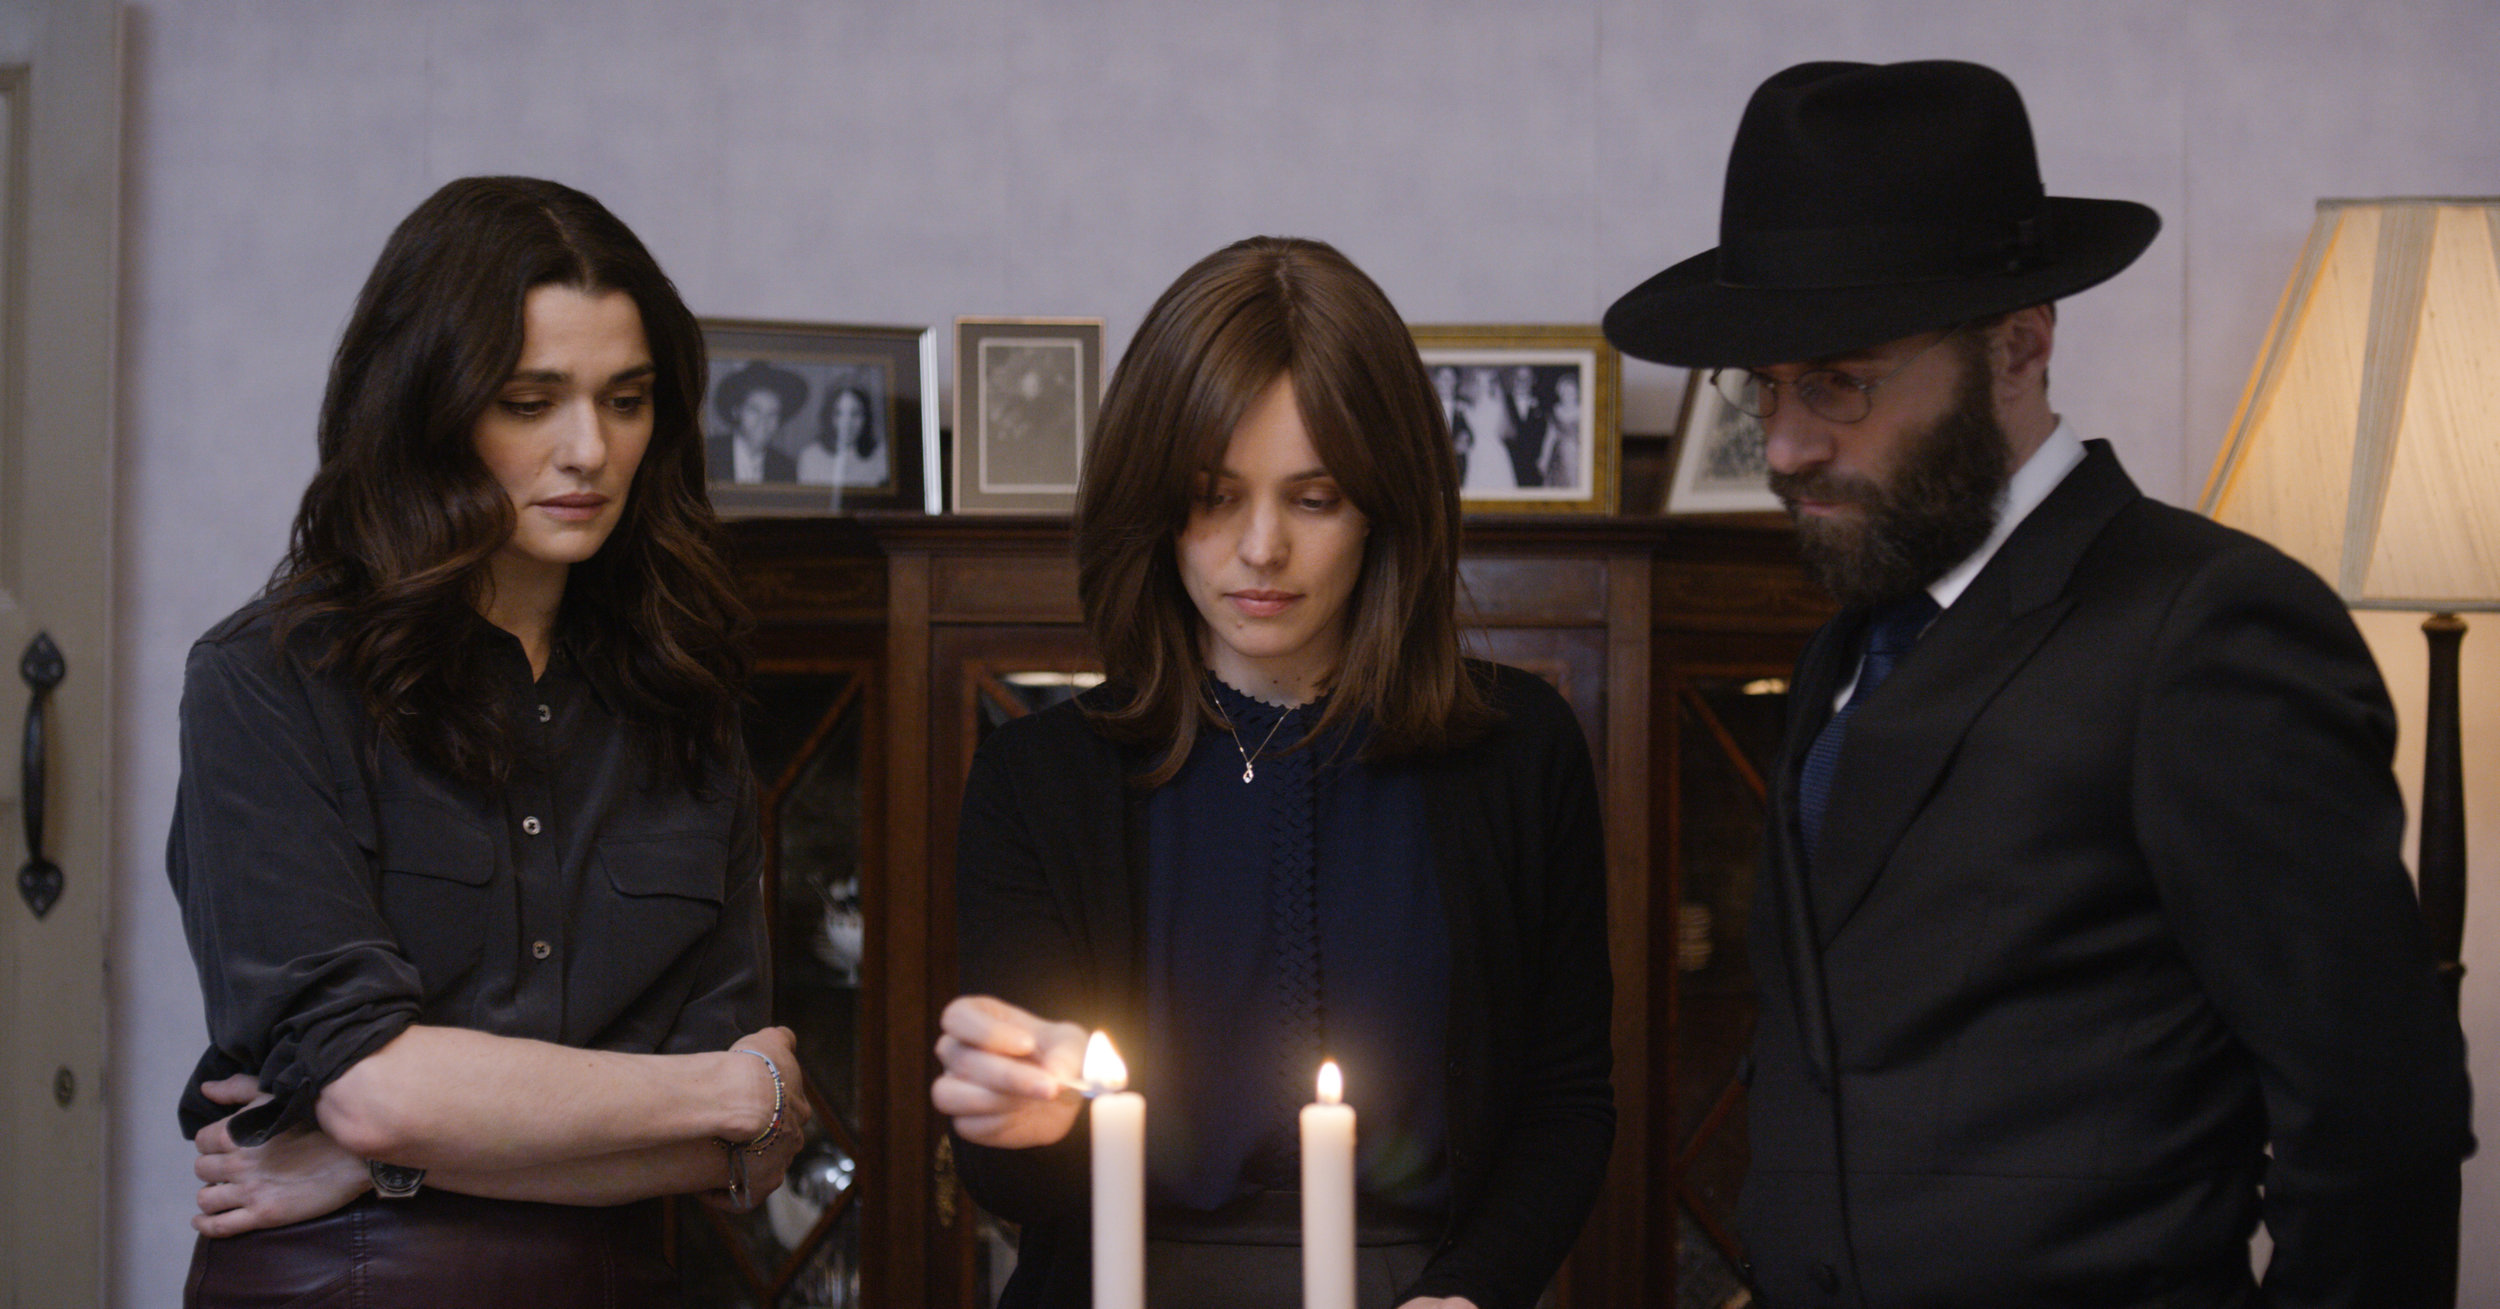 Ronit's return isn't good news for the marriage between Esti and aspiring rabbi Dovid